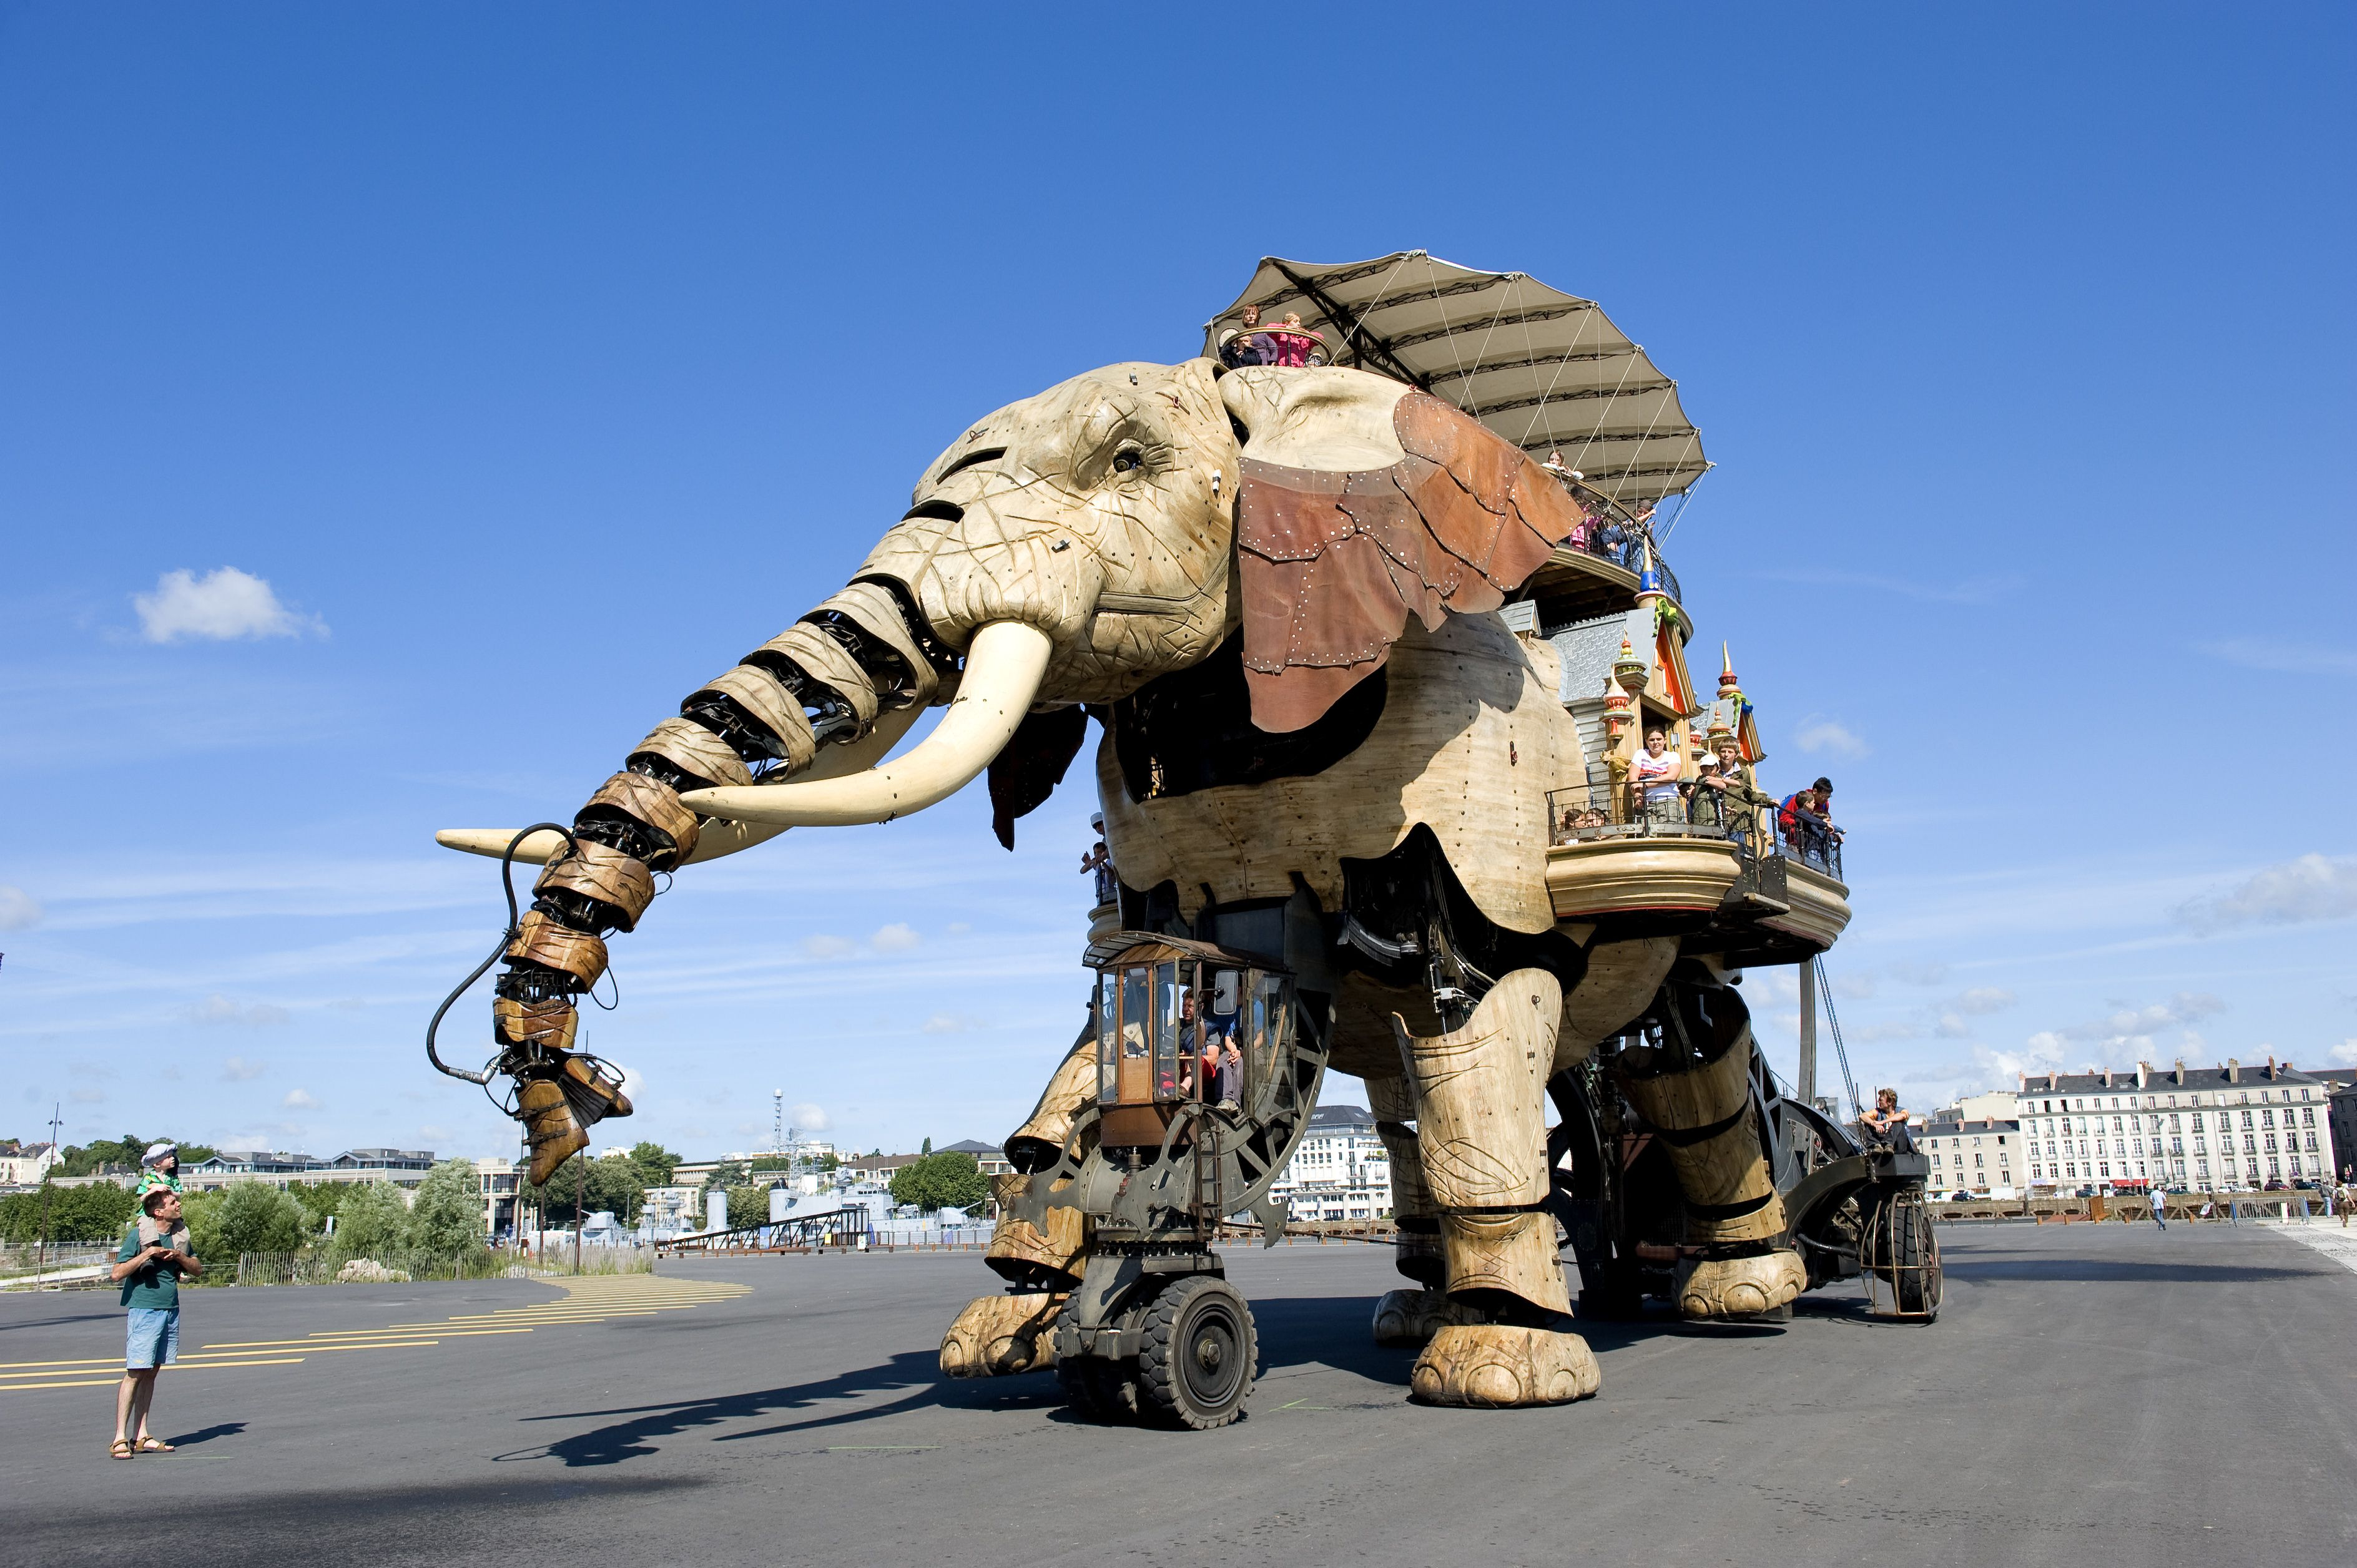 France, Loire Atlantique, Nantes, Ile de Nantes, Les Machines de l'Ile (the Machines of the Island) in warehouses of the former shipyards, artistic project conceived by Francois Delaroziere and Pierre Orefice, the elephant, automaton